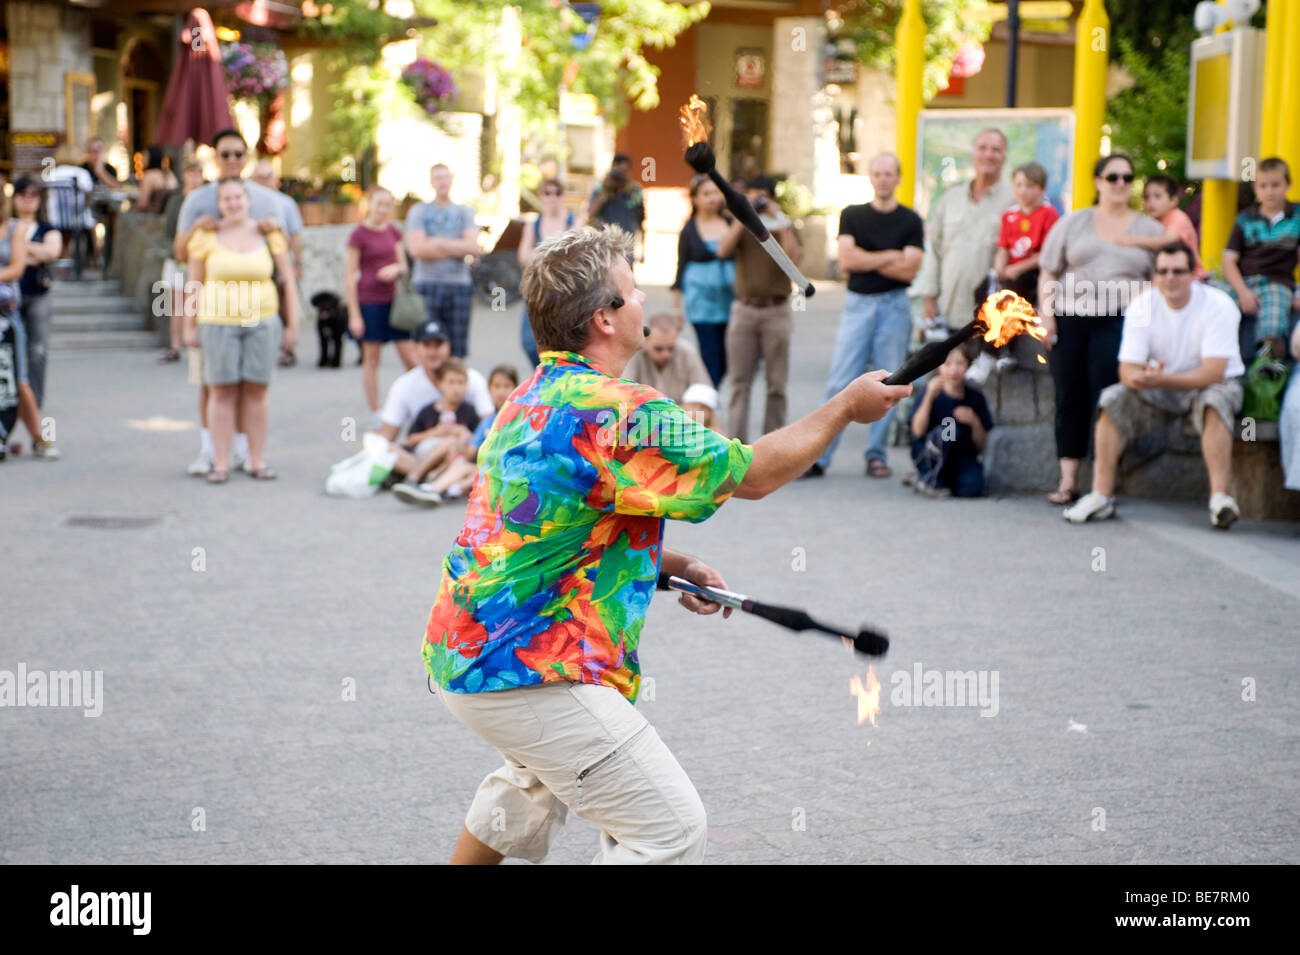 Street entertainer in the Whistler Village. Whistler BC, Canada. - Stock Image